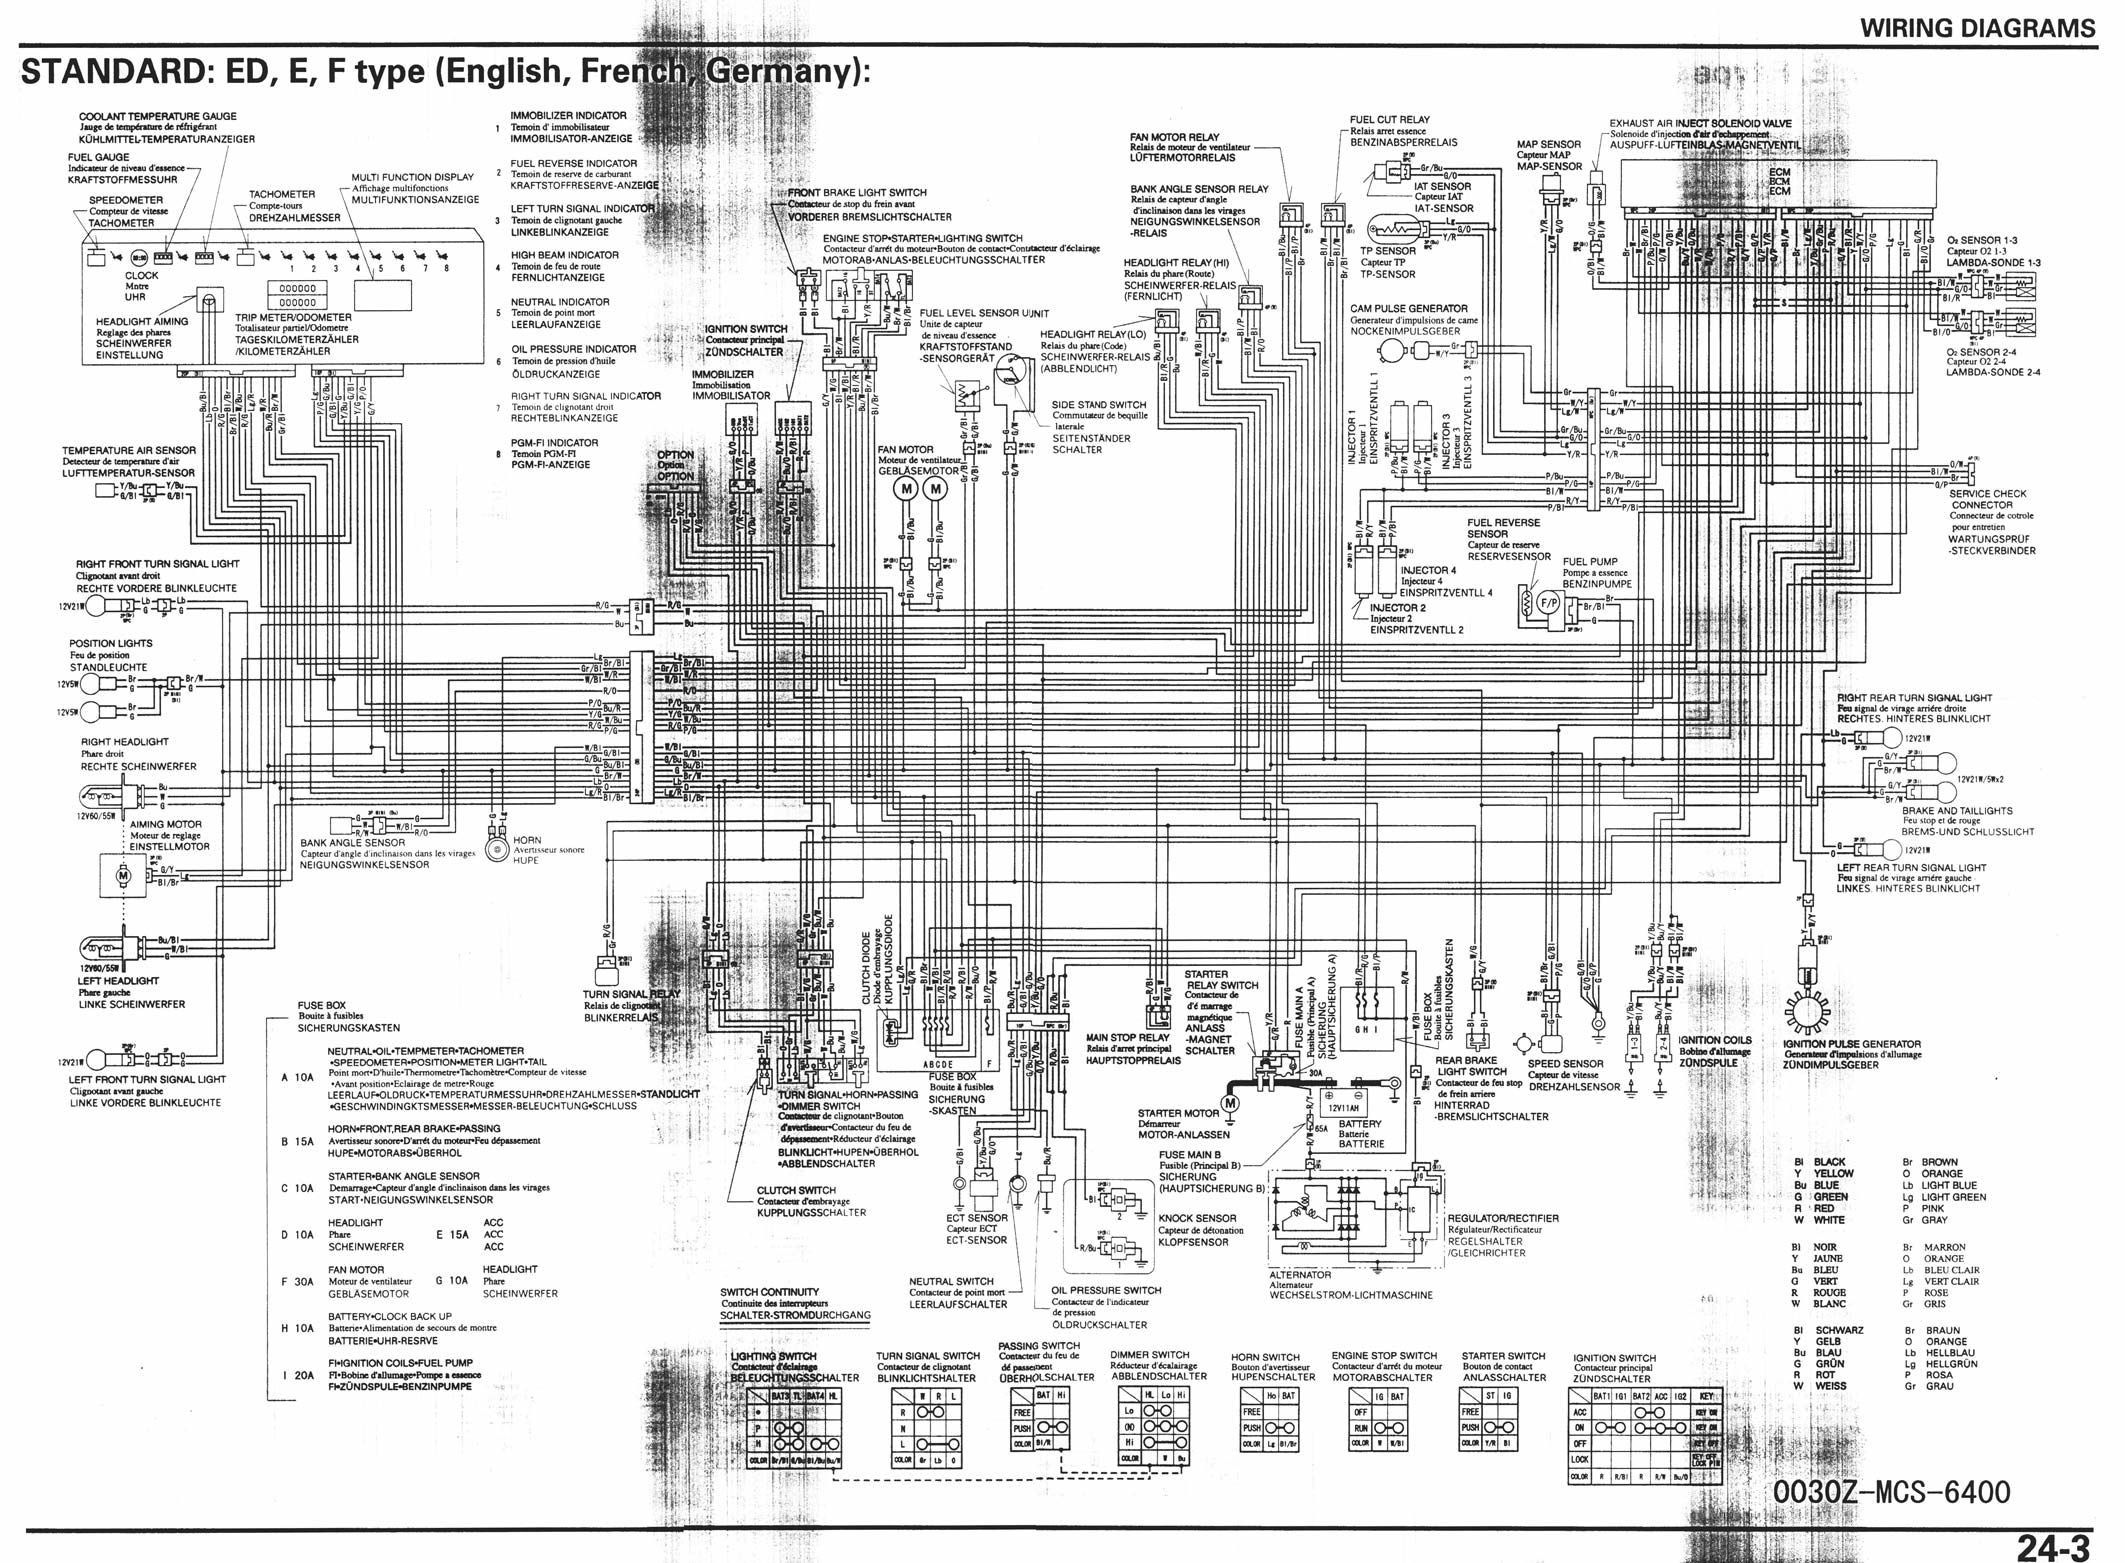 D40LY] WIRING DIAGRAM BMW DIAGRAMS CHANCE THAT IF YOUR [AW40N ...